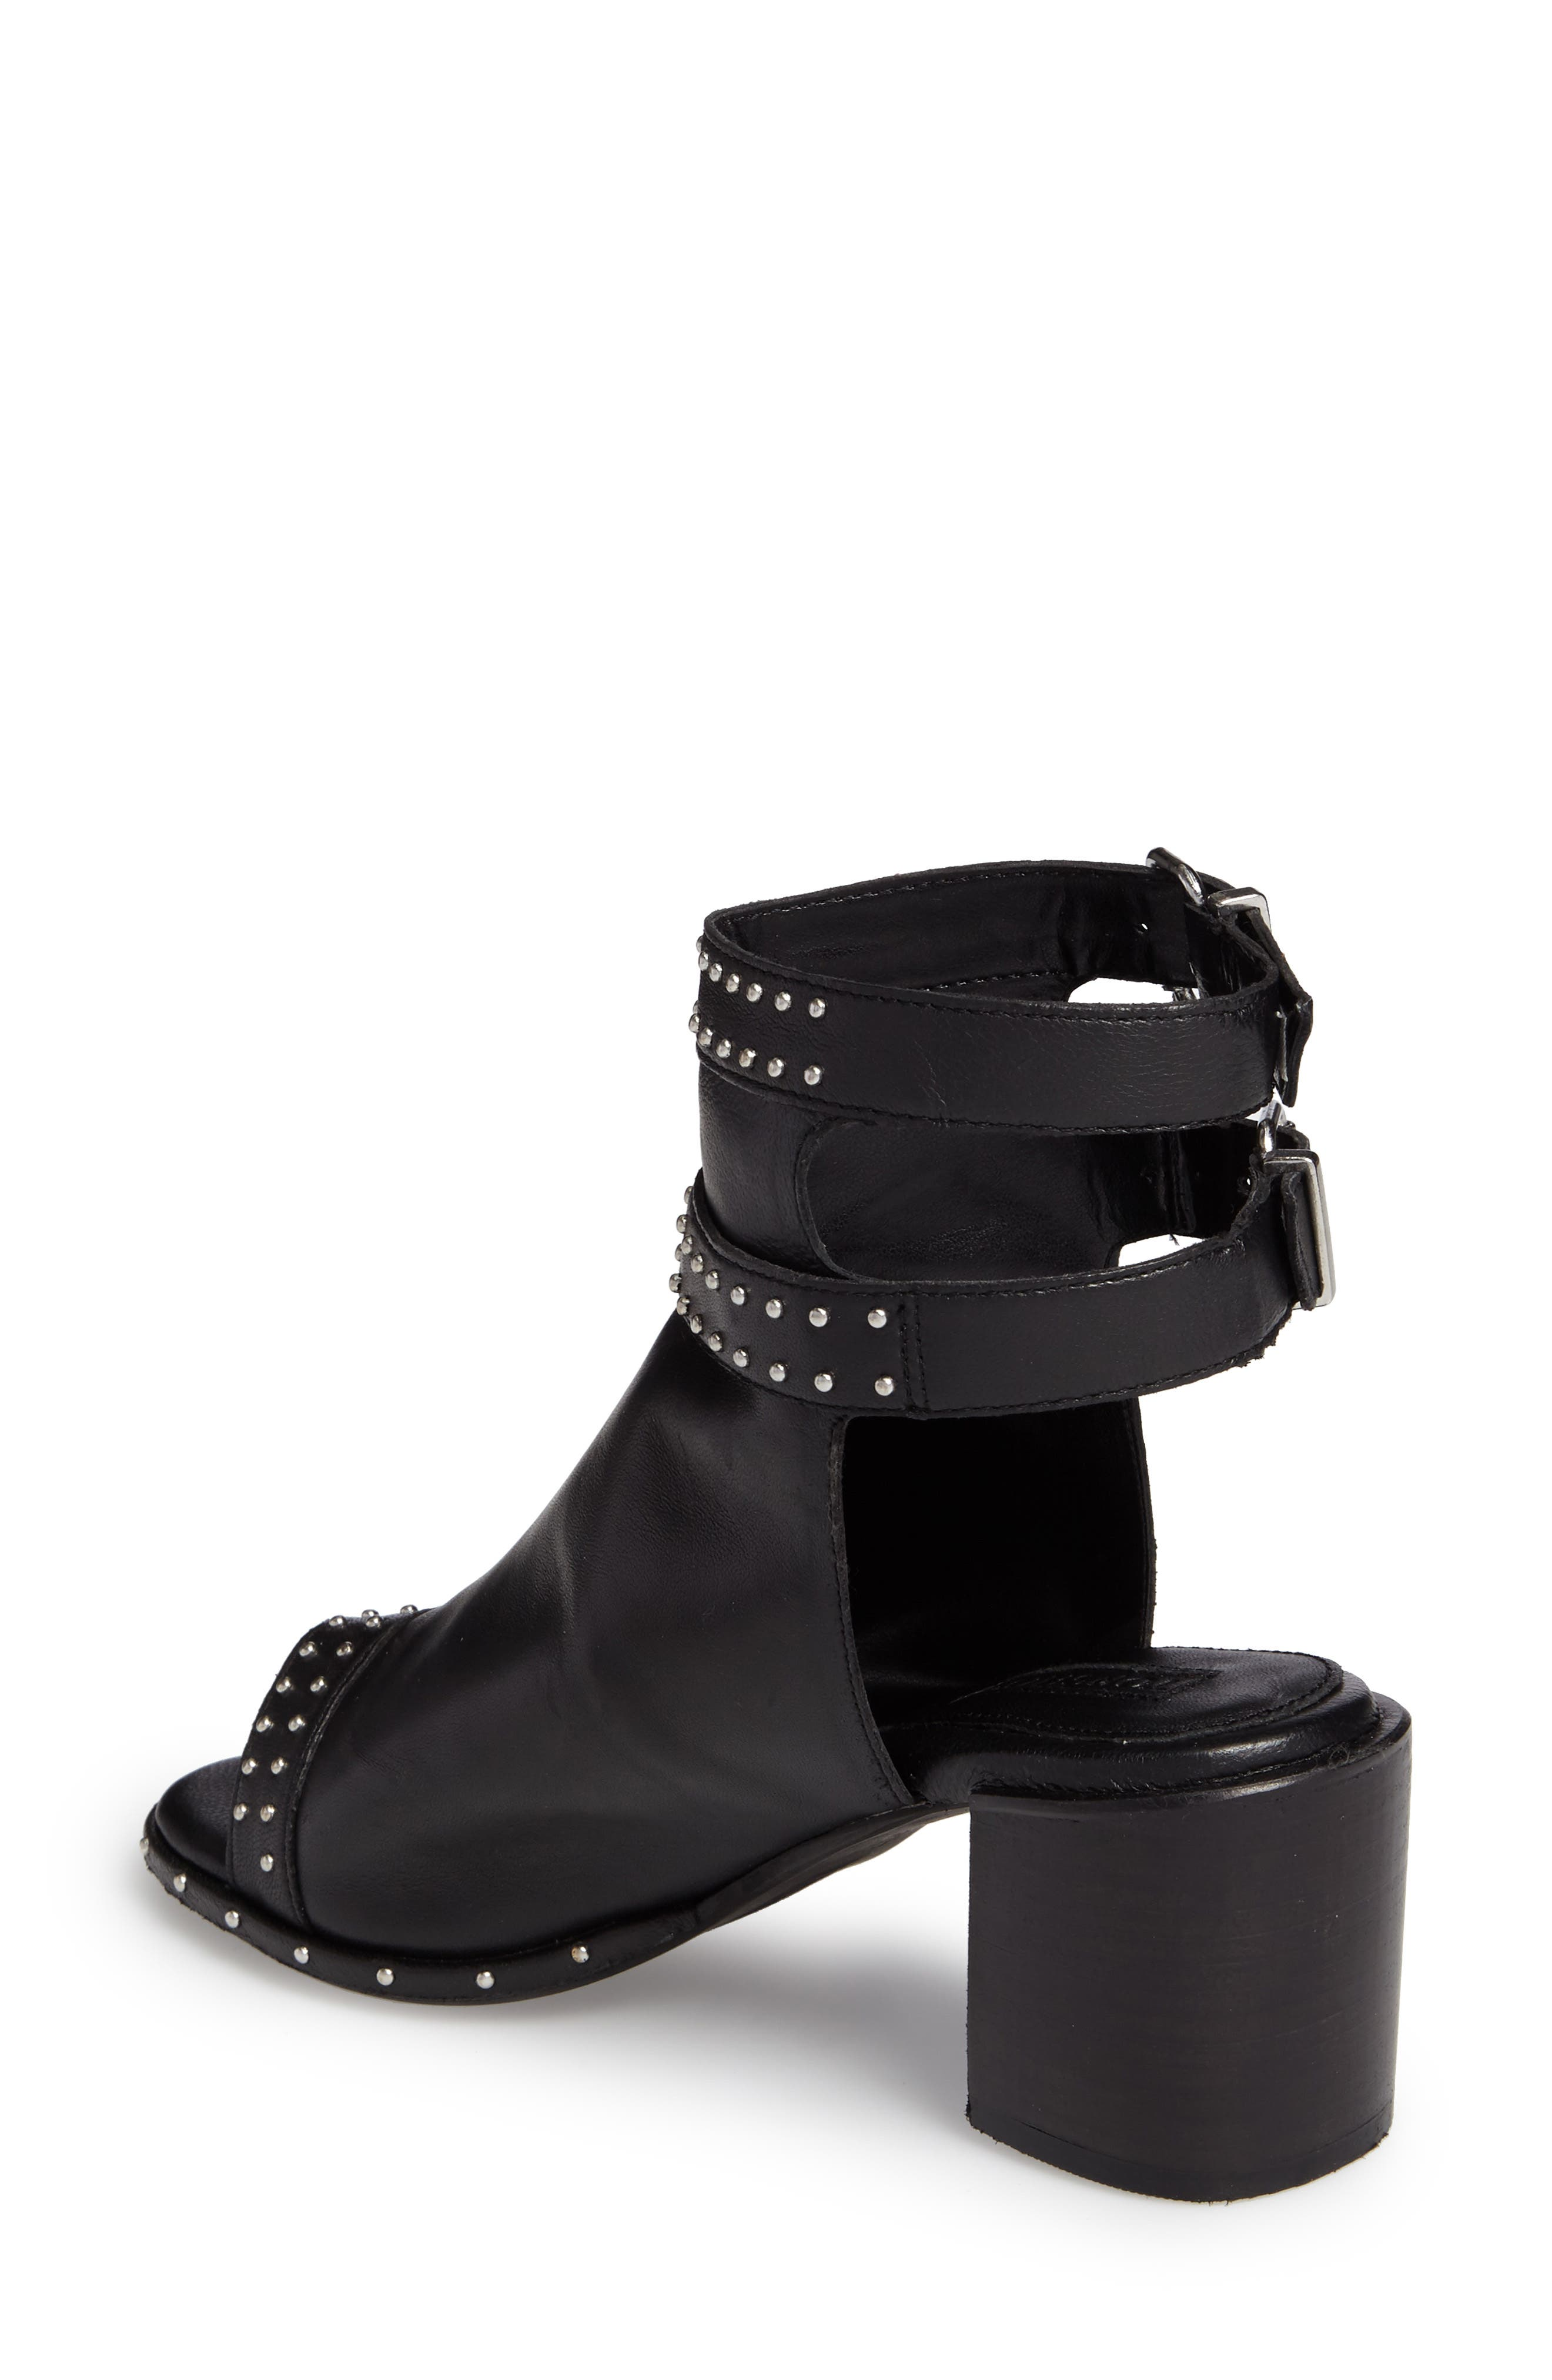 North Studded Bootie Sandal,                             Alternate thumbnail 2, color,                             001